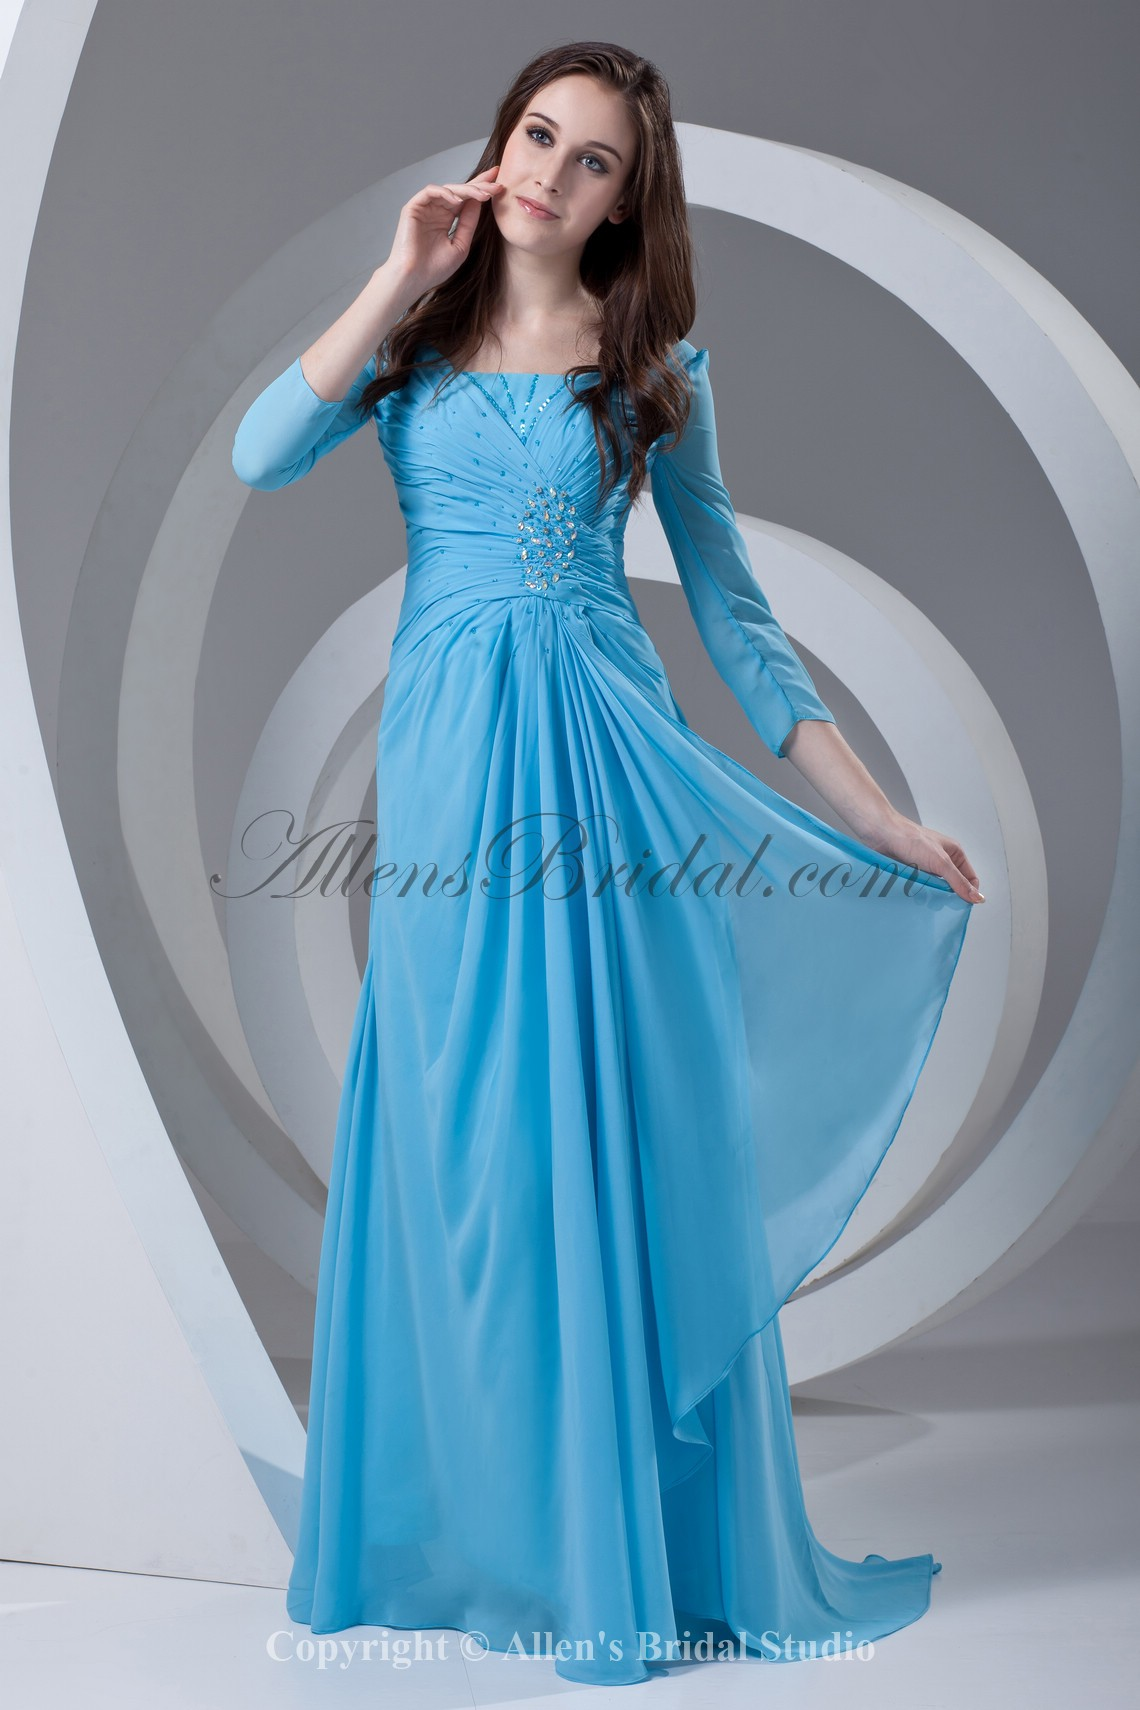 /337-2690/chiffon-square-neckline-sweep-train-column-prom-dress-with-three-quarter-sleeve-and-gathered-ruched.jpg